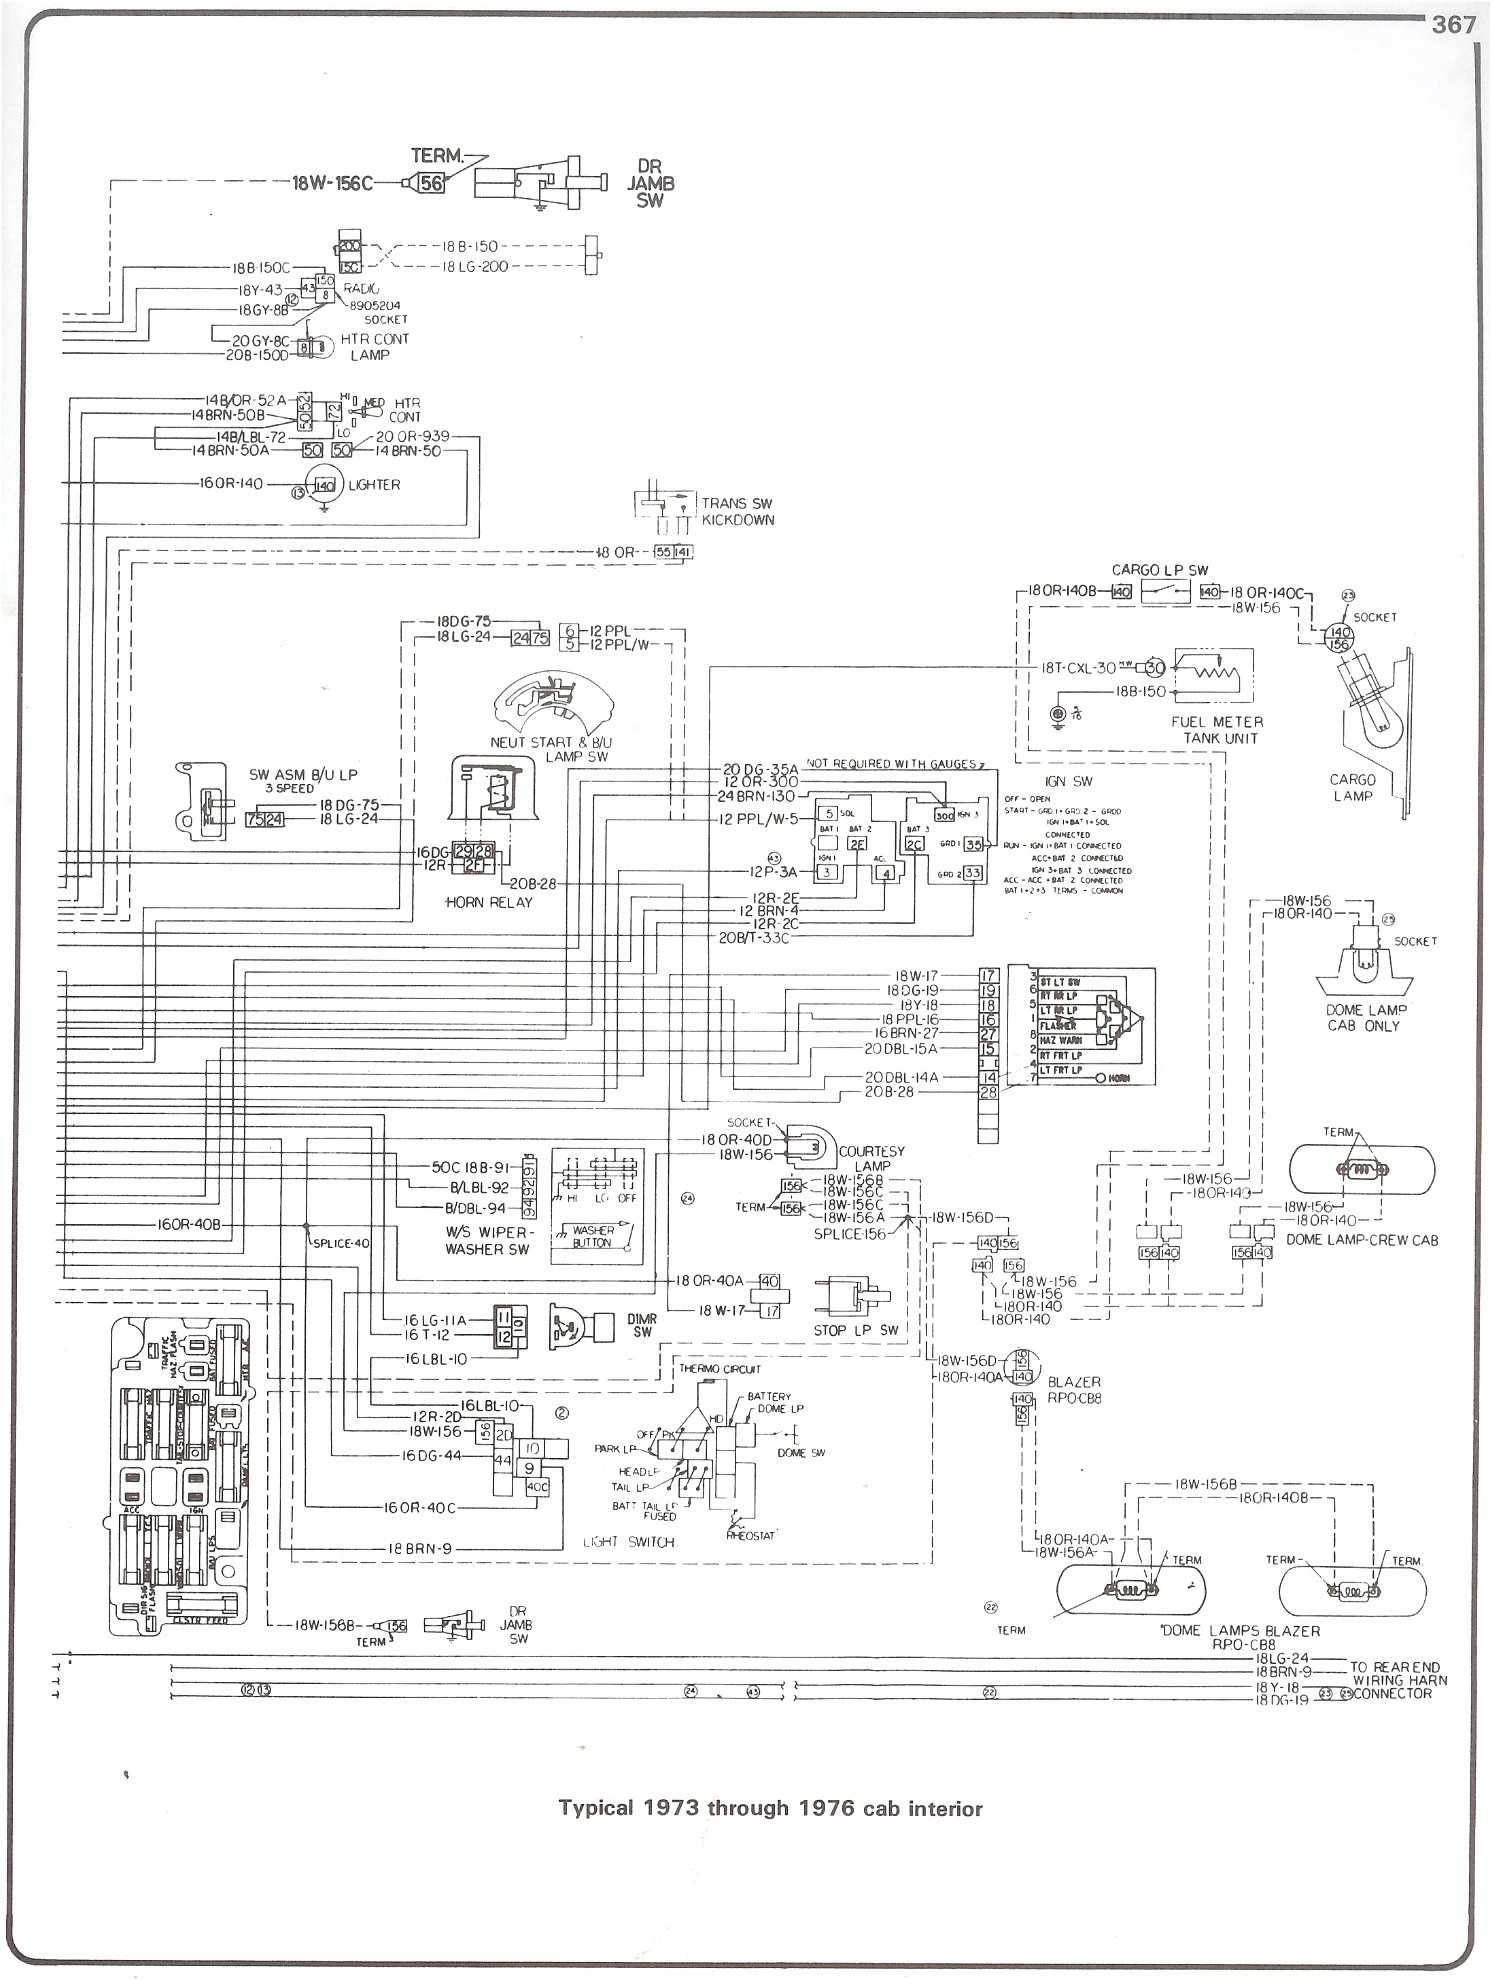 hight resolution of wiring diagram for 1979 chevrolet truck wiring diagram load wiring diagram 1979 chevrolet c10 get free image about wiring